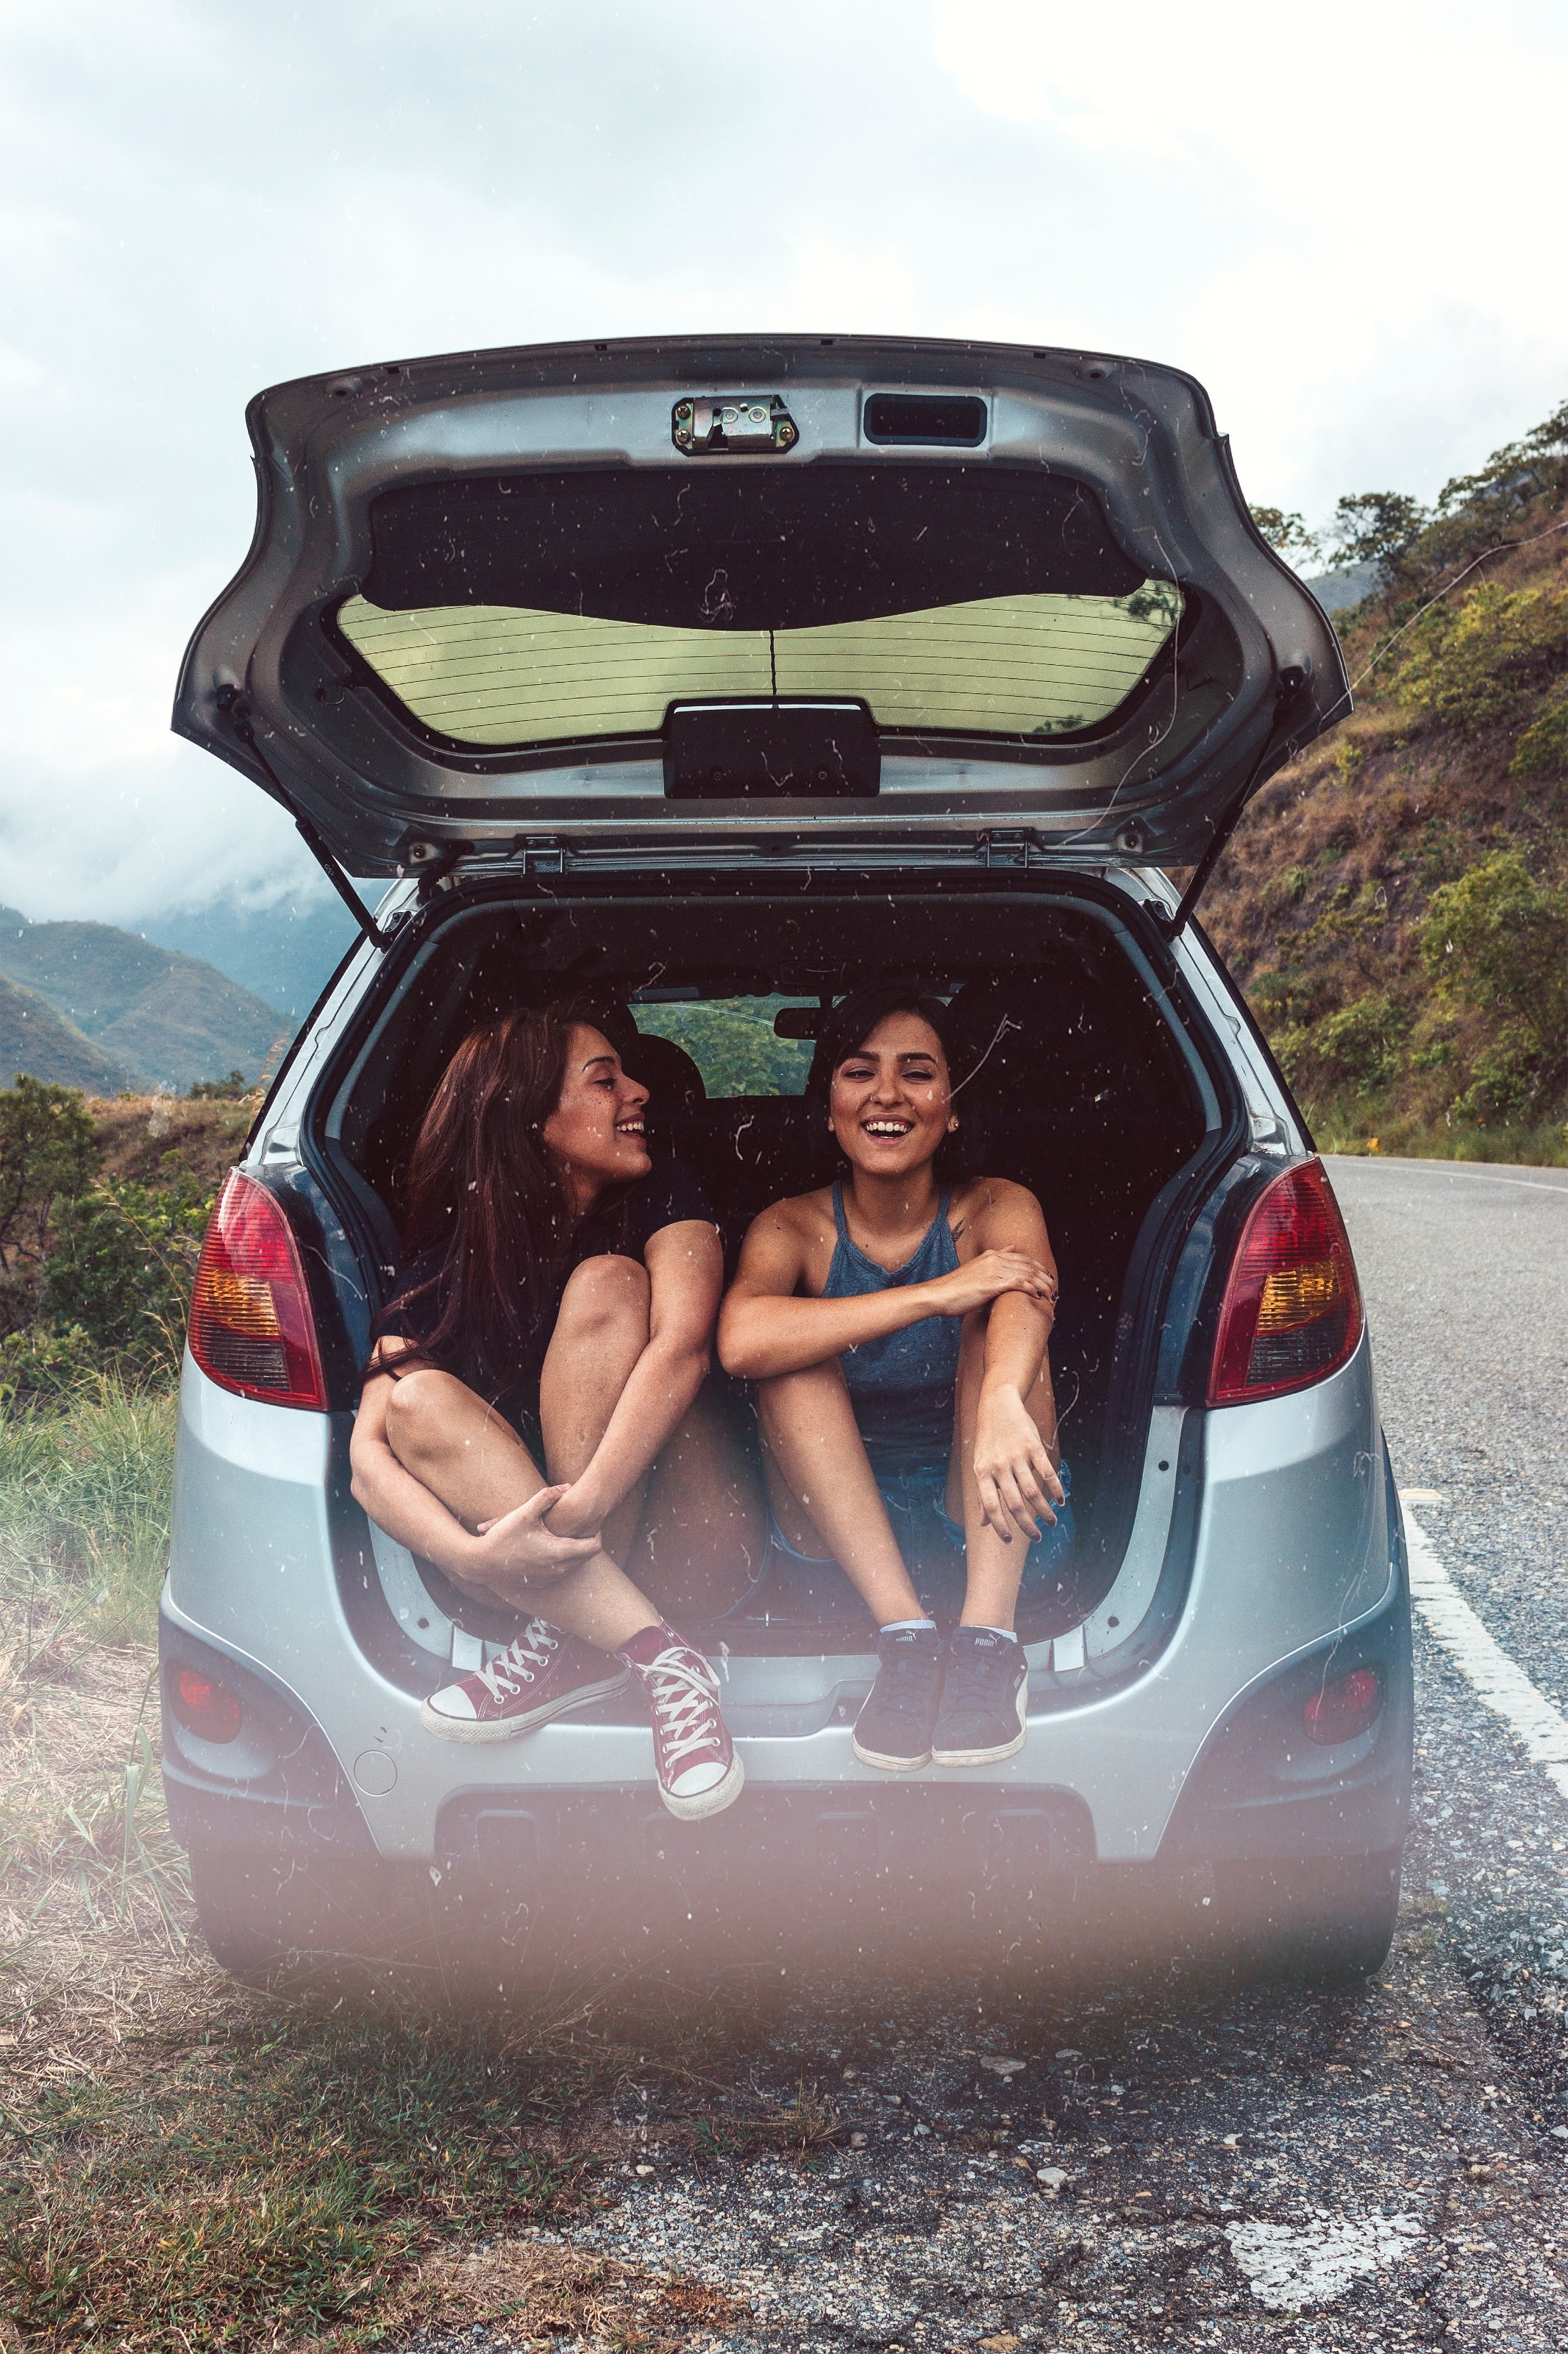 8 Practical (and Expert) Pointers You Should Follow for an Amazing Road Trip